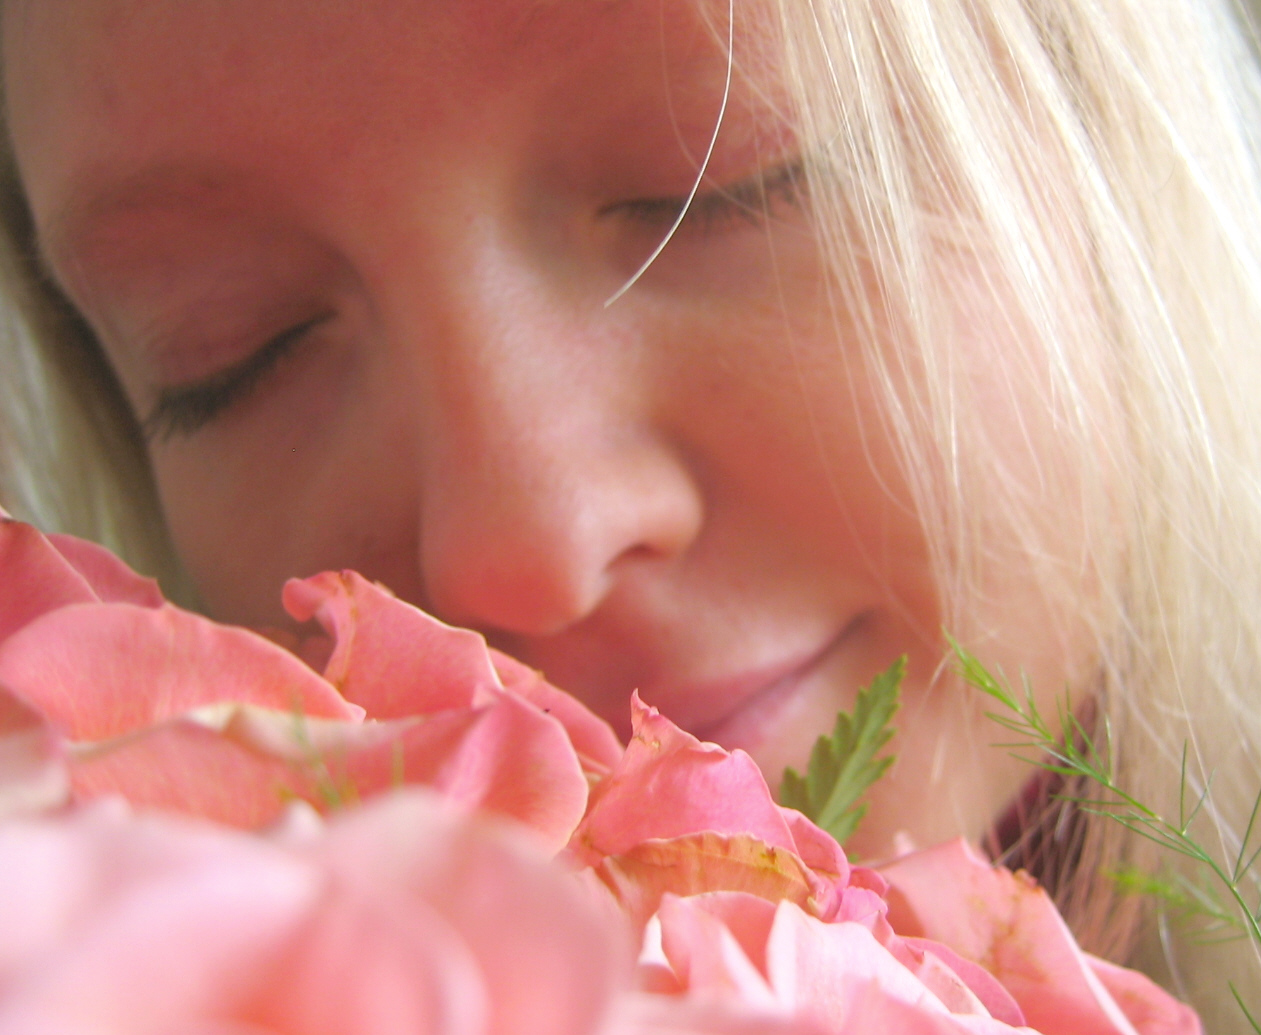 Fresh-smelling flowers to improve your mood